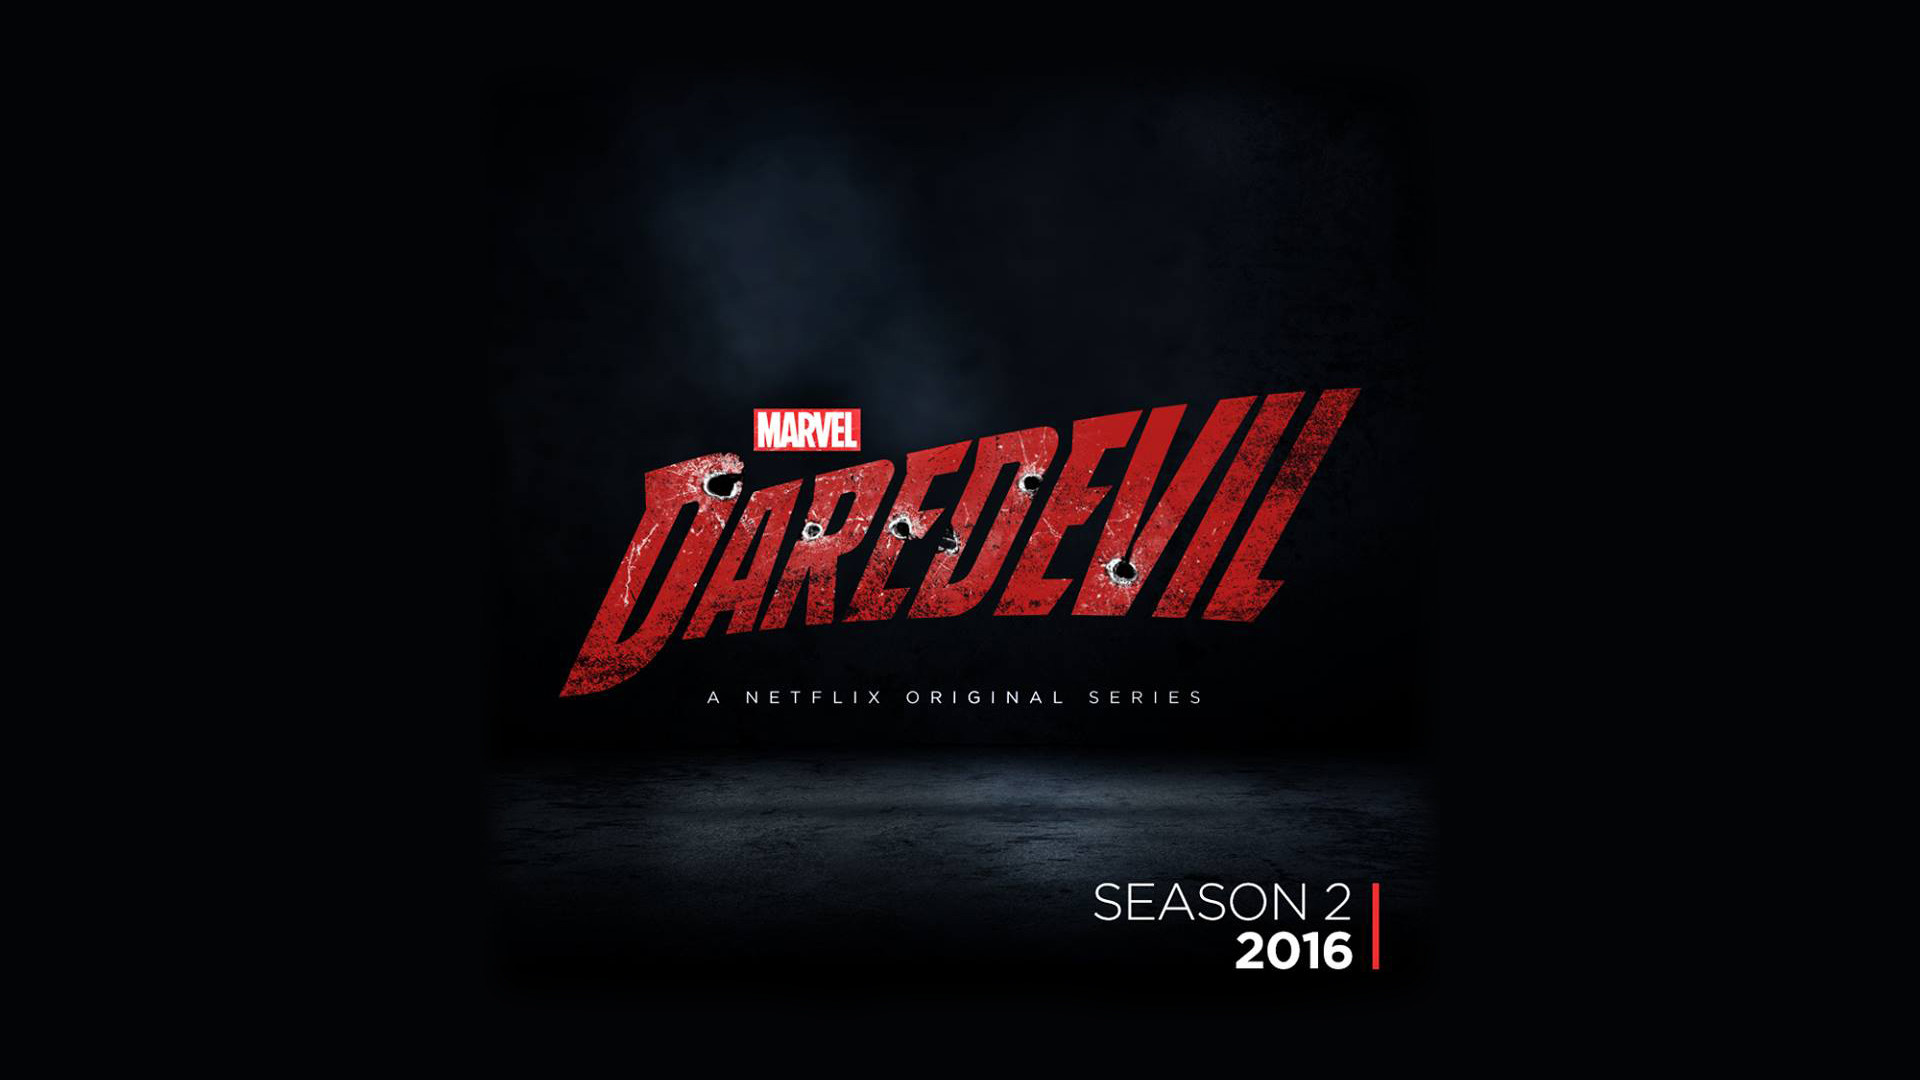 Res: 1920x1080, Daredevil Logo Image On Wallpaper Hd 1920 x 1080 px 623.08 KB rivera logo iphone movie